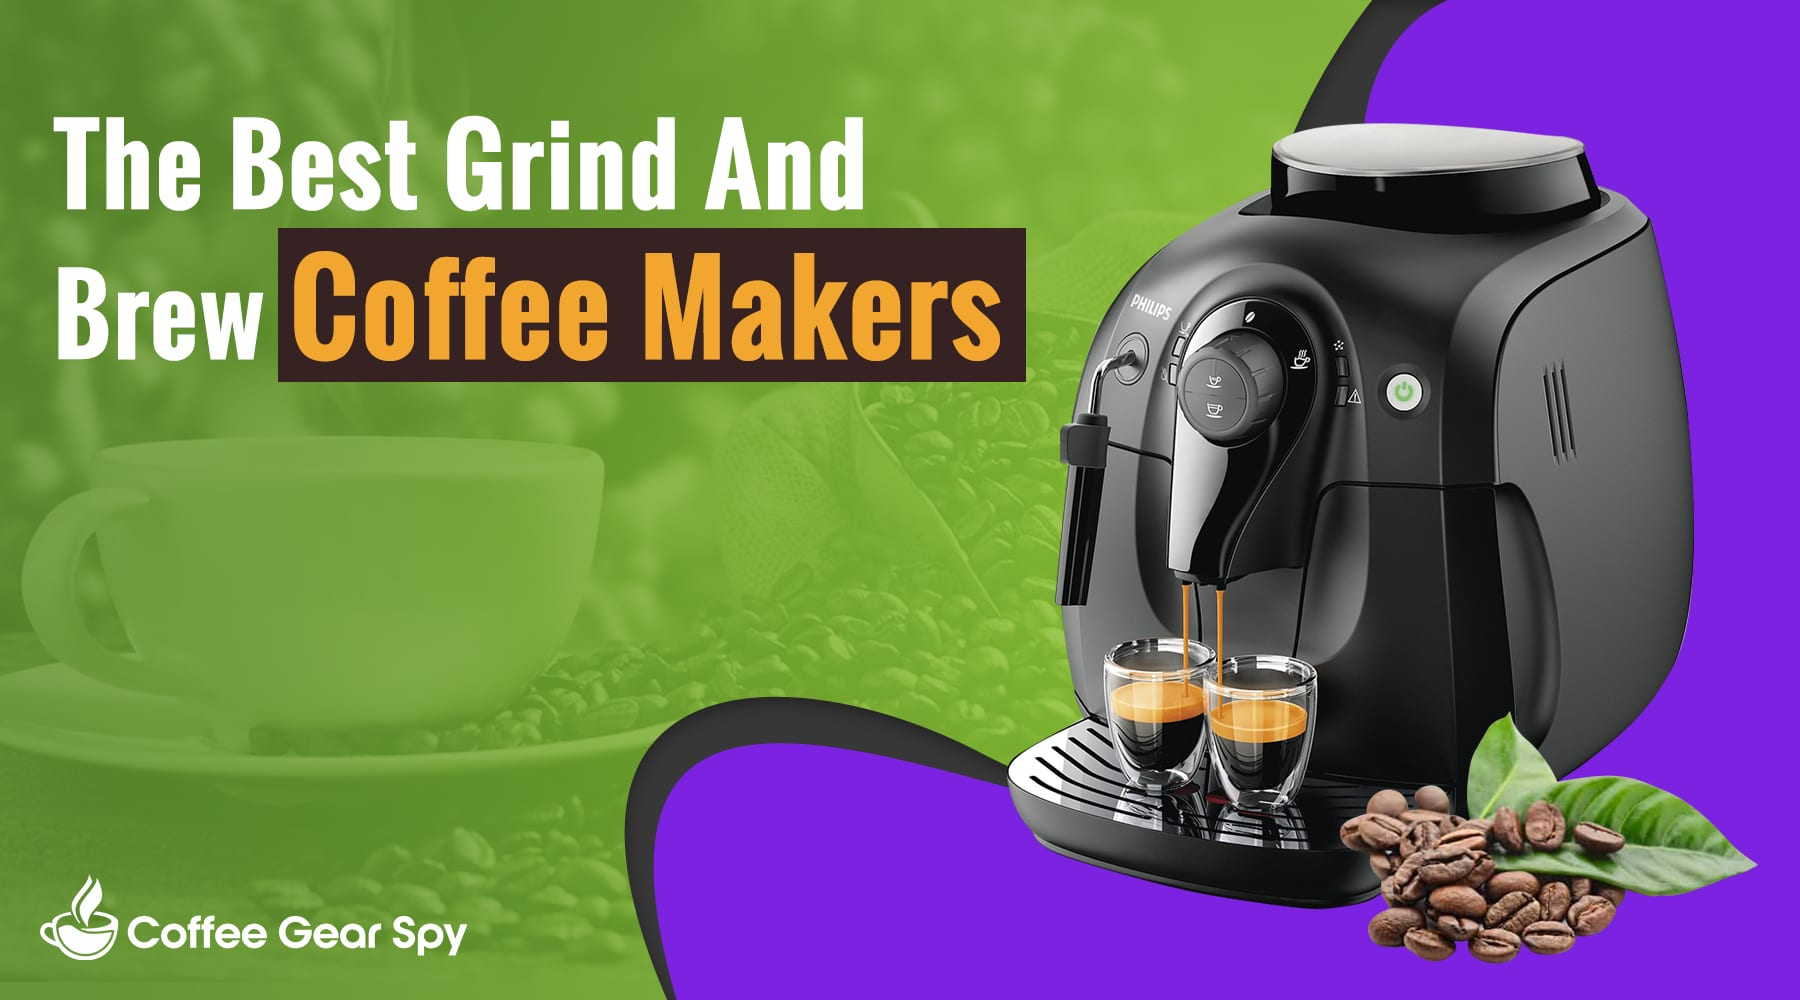 Ditch The Expensive Coffee Shops: What's The Best Grind And Brew Coffee Maker?